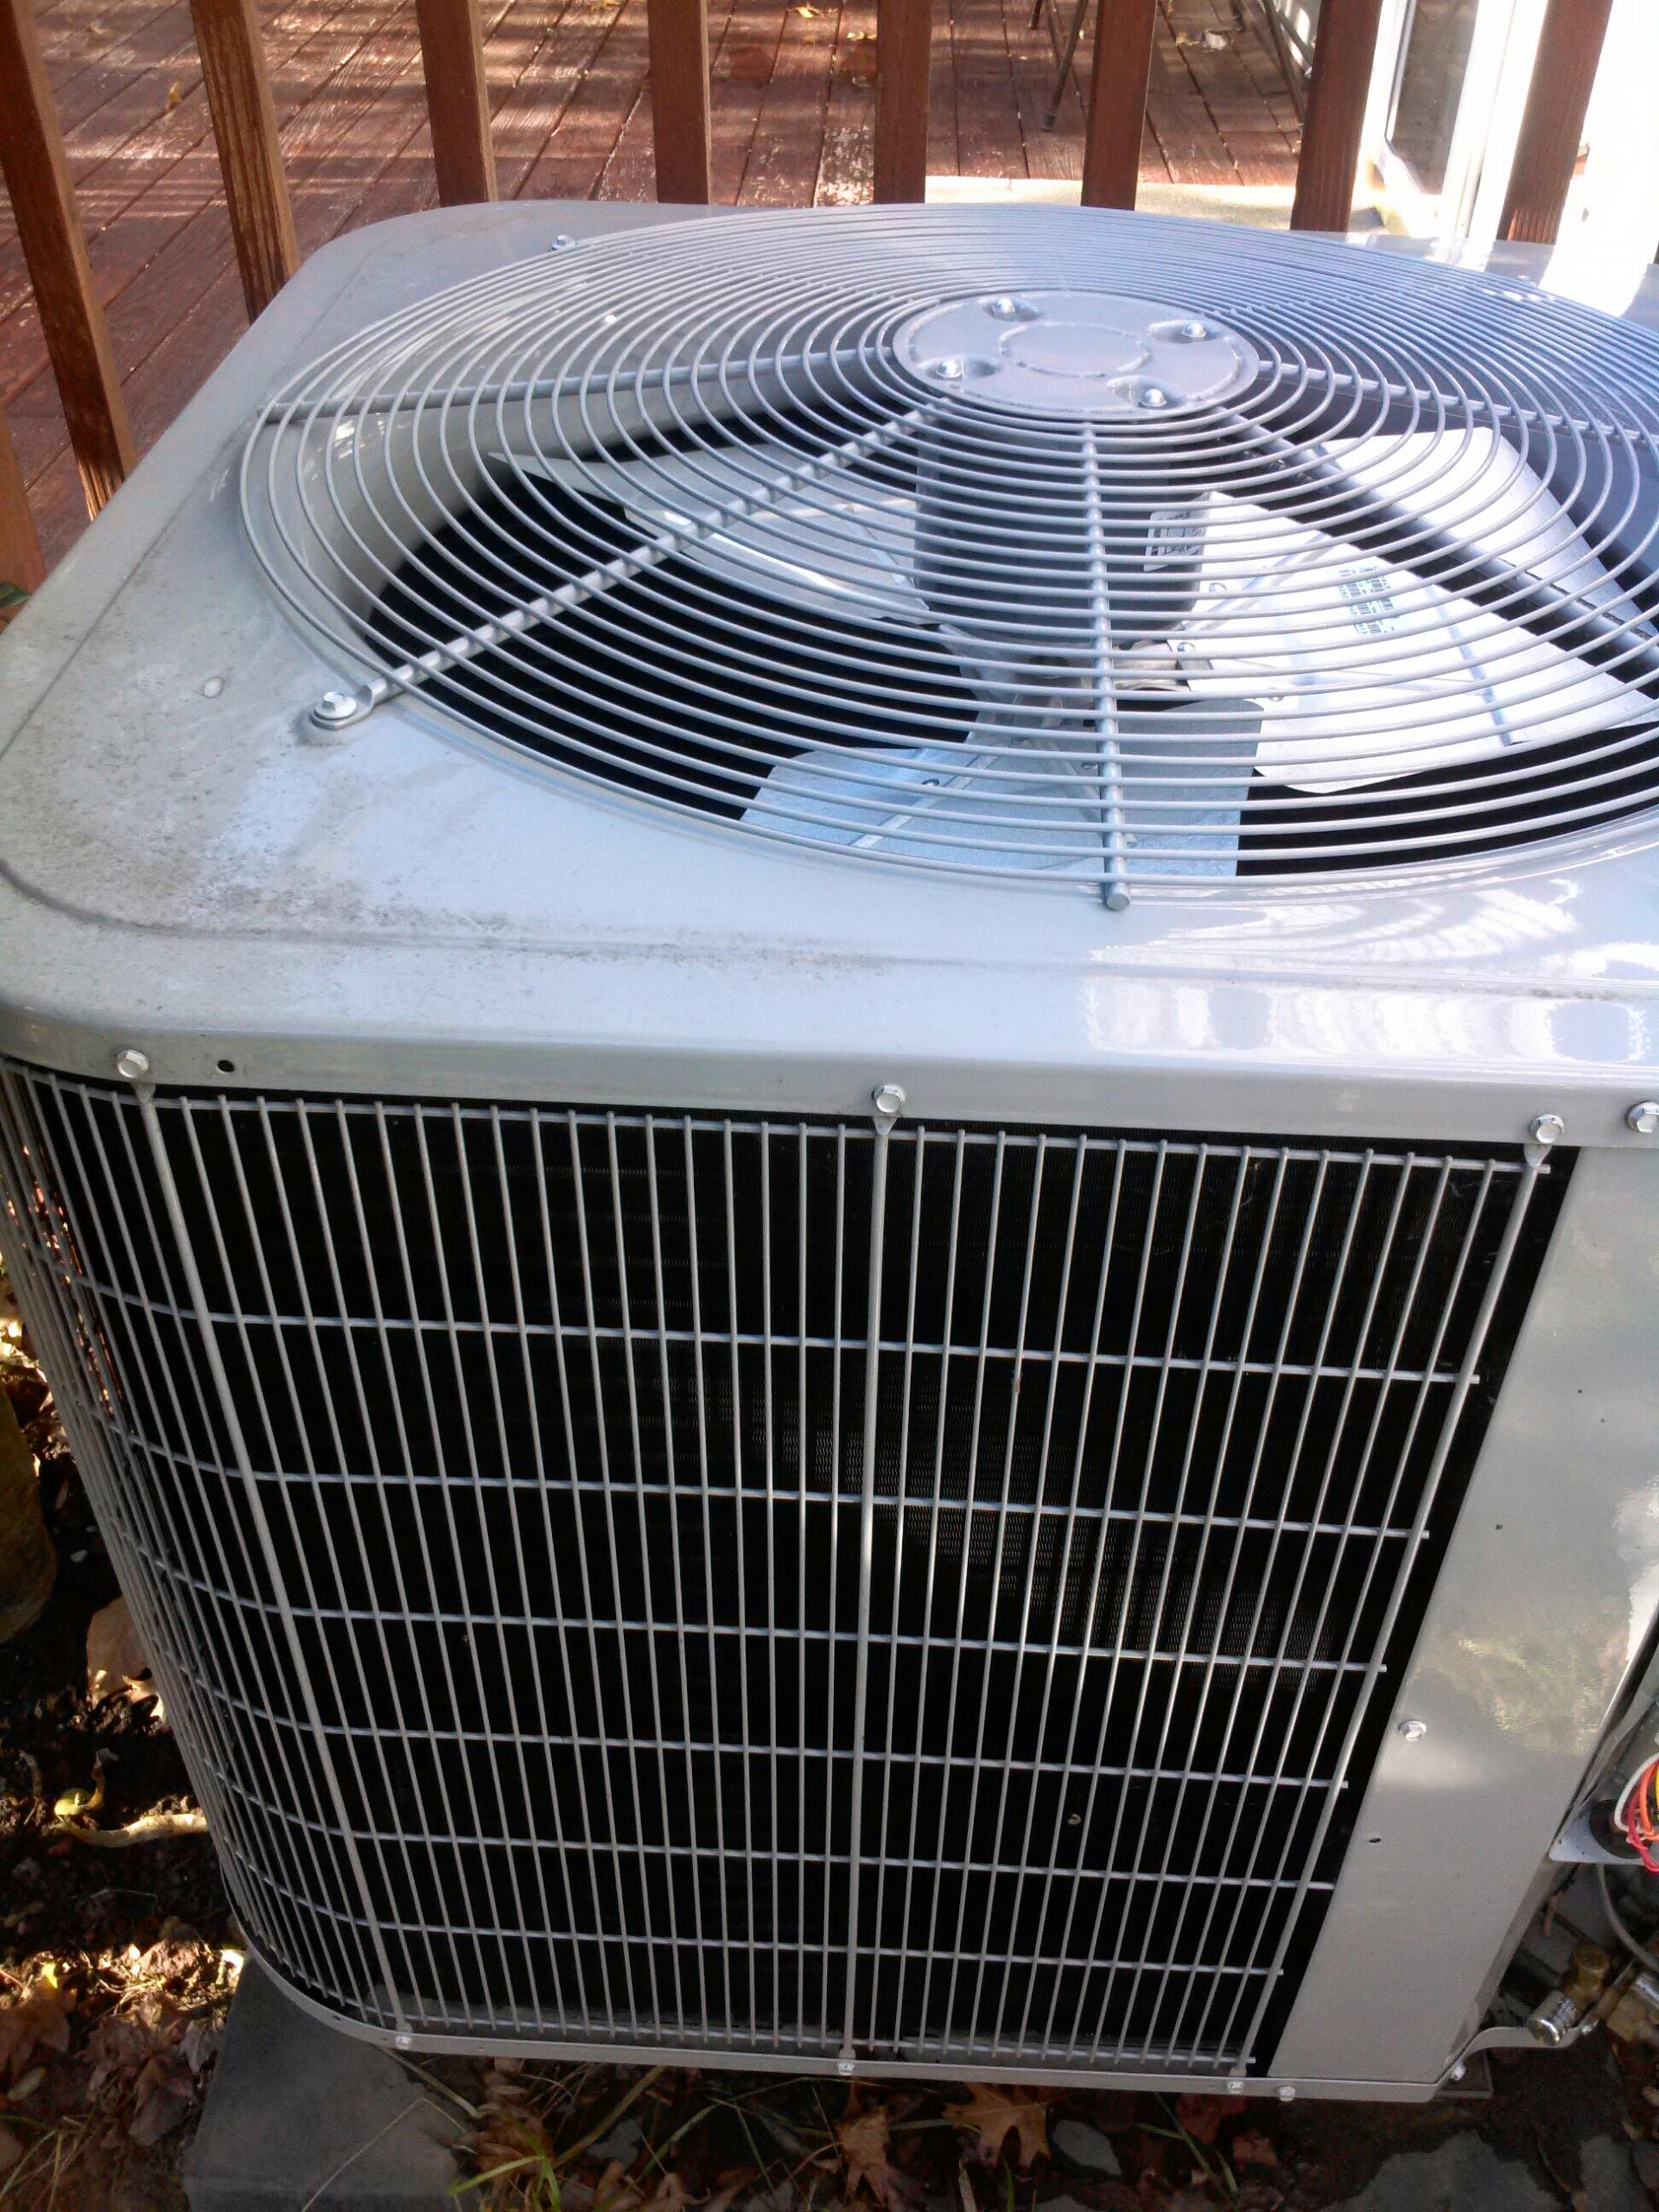 Crofton, MD - Crofton Maryland Carrier AC air conditioning & heating system replacement installation & repair service call.